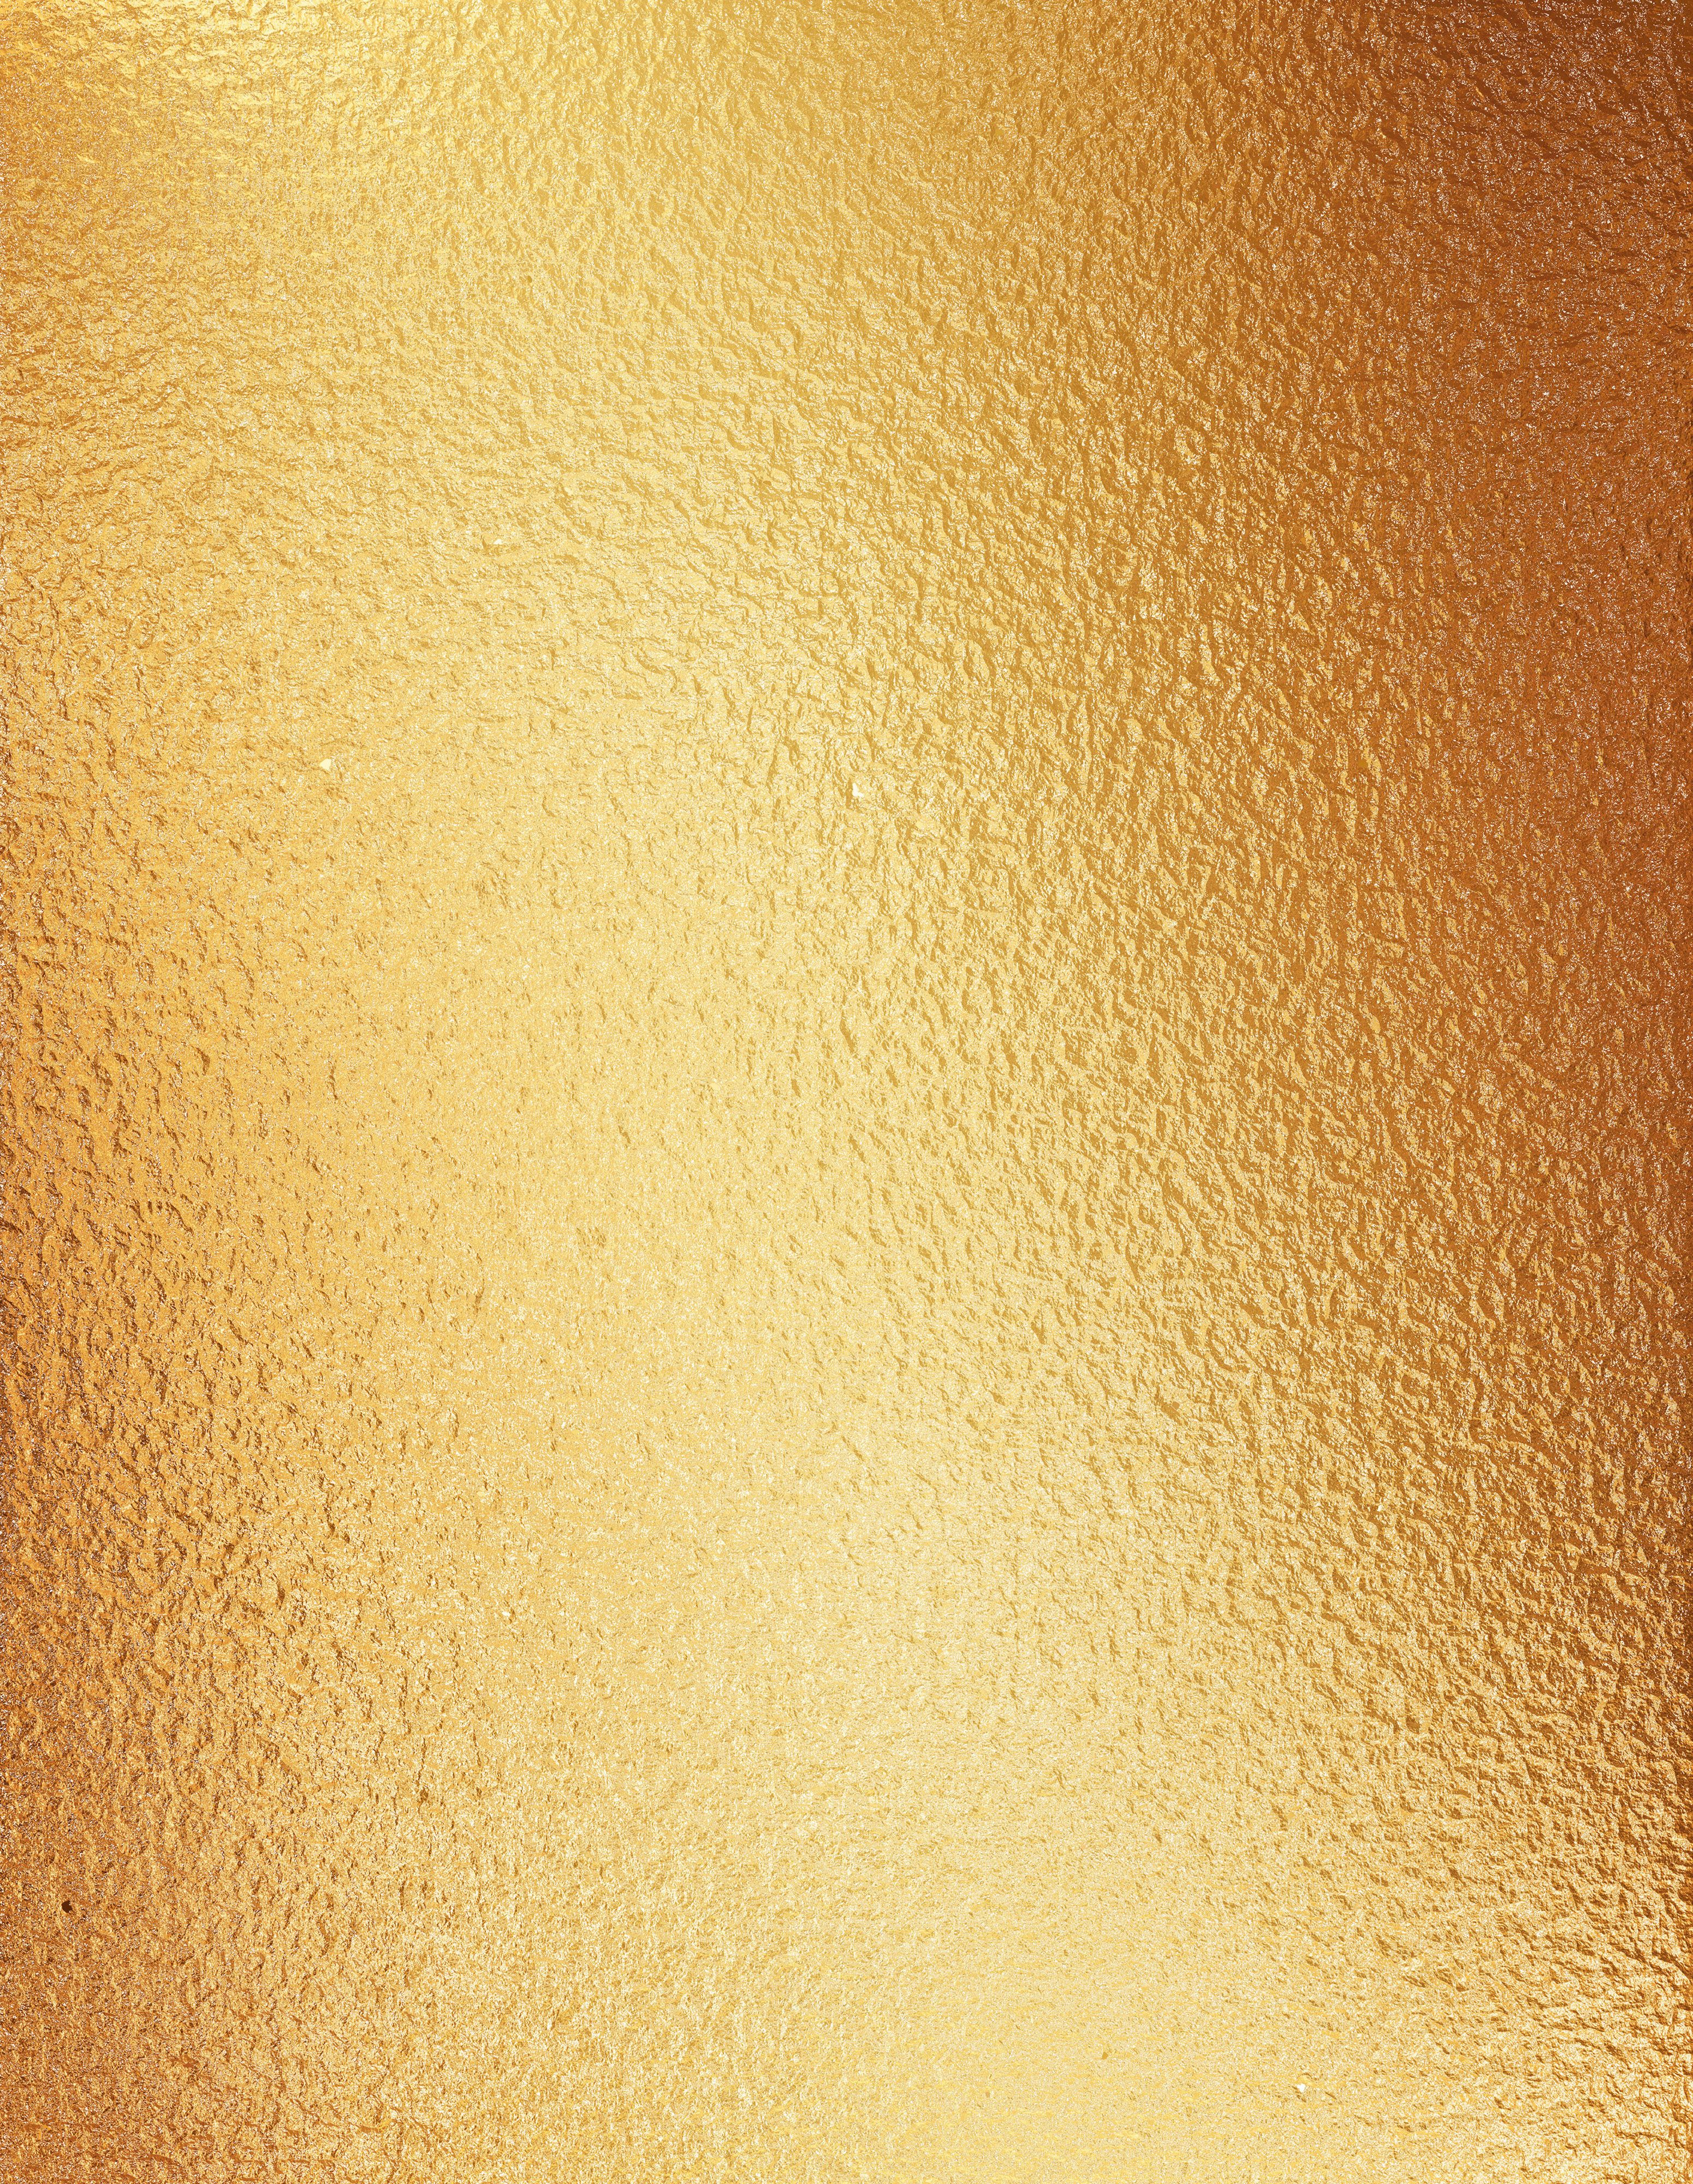 Gold Background Of A Sheet Of Finely Crinkled Metal Foil Http Www Myfreetextures Com Gold Background Gold Foil Background Gold Foil Texture Gold Background